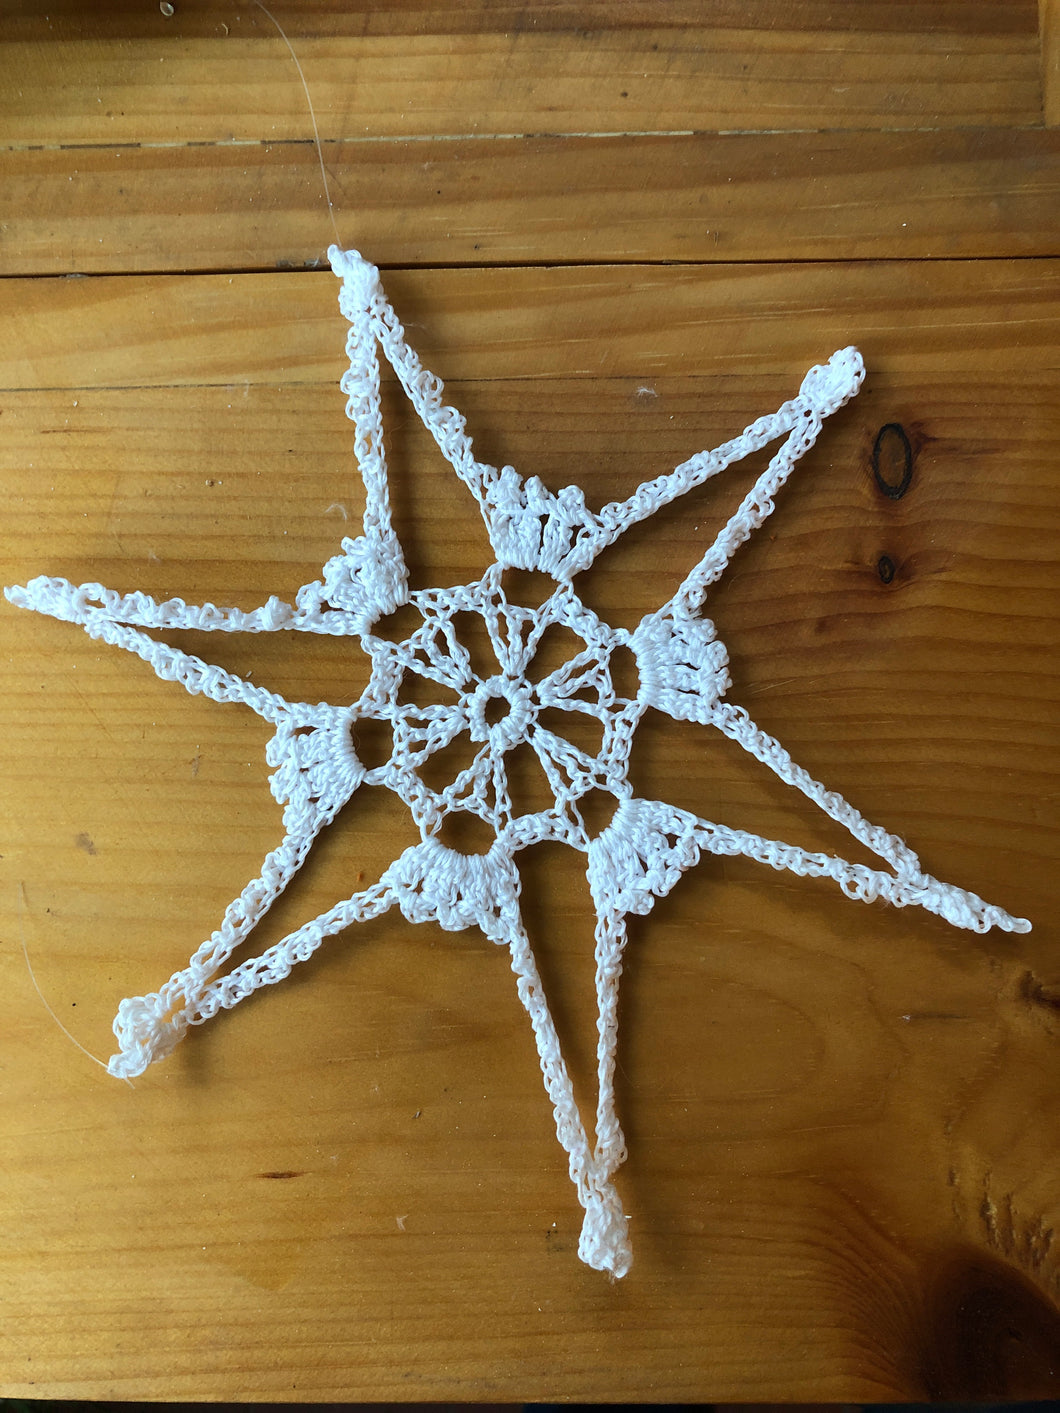 Crocheted Snowflakes in various forms